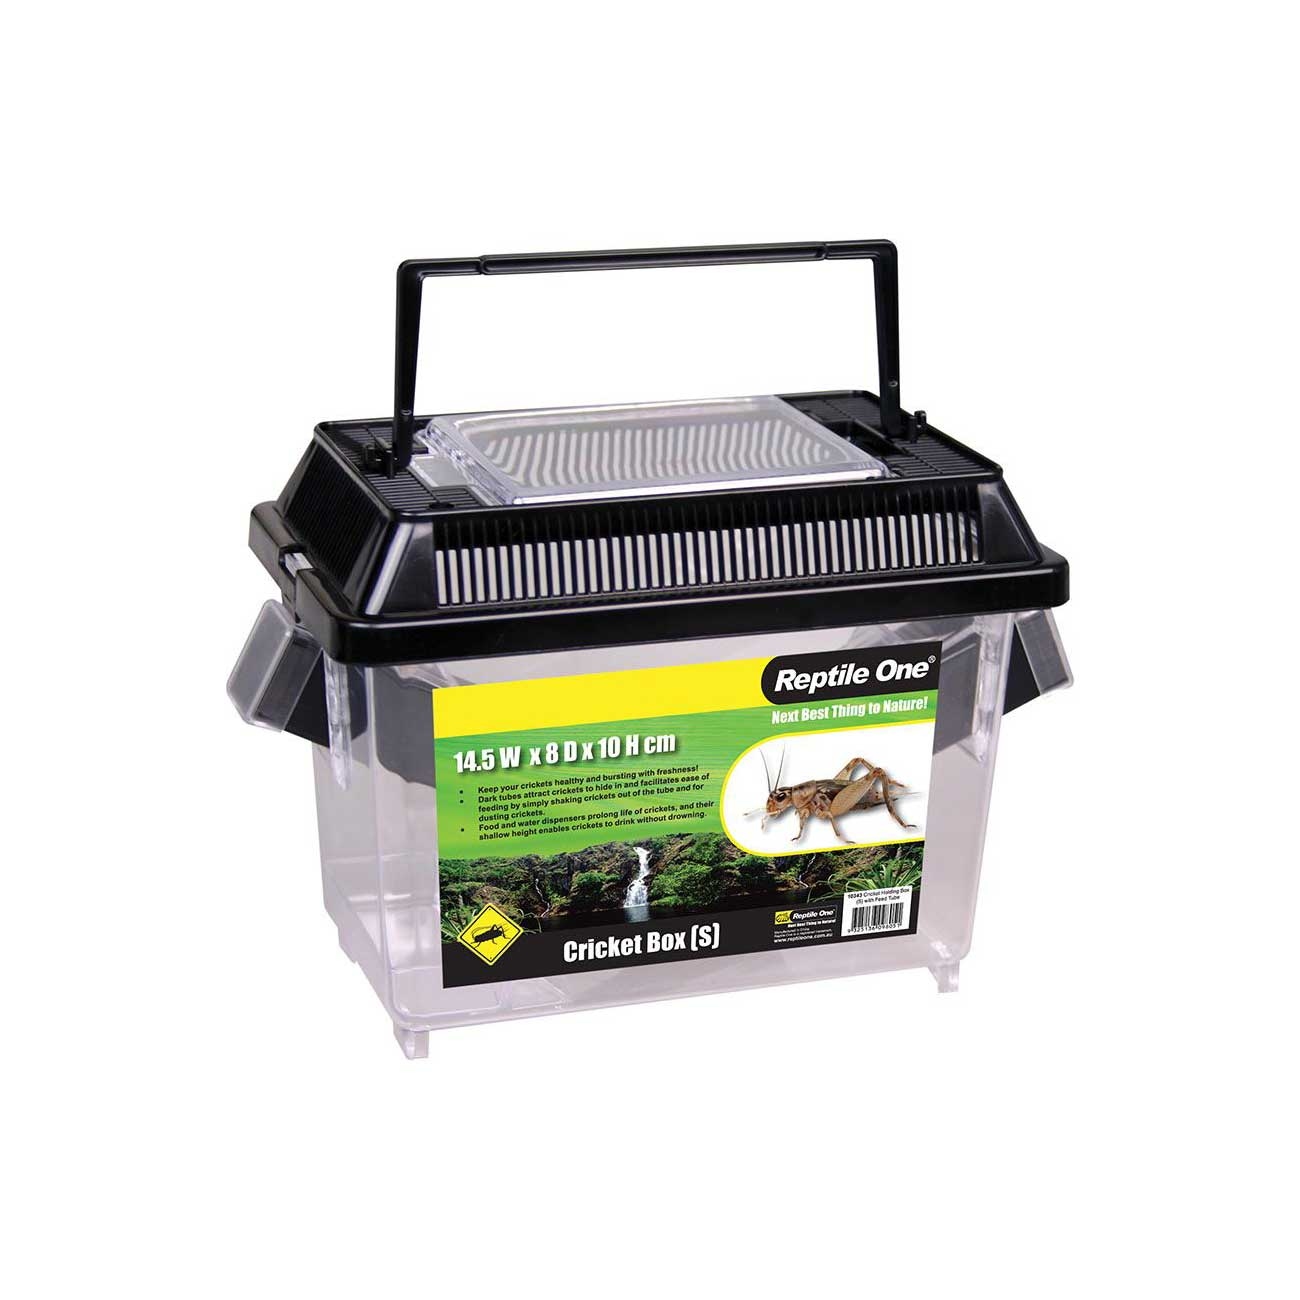 Reptile One Cricket Holding Box